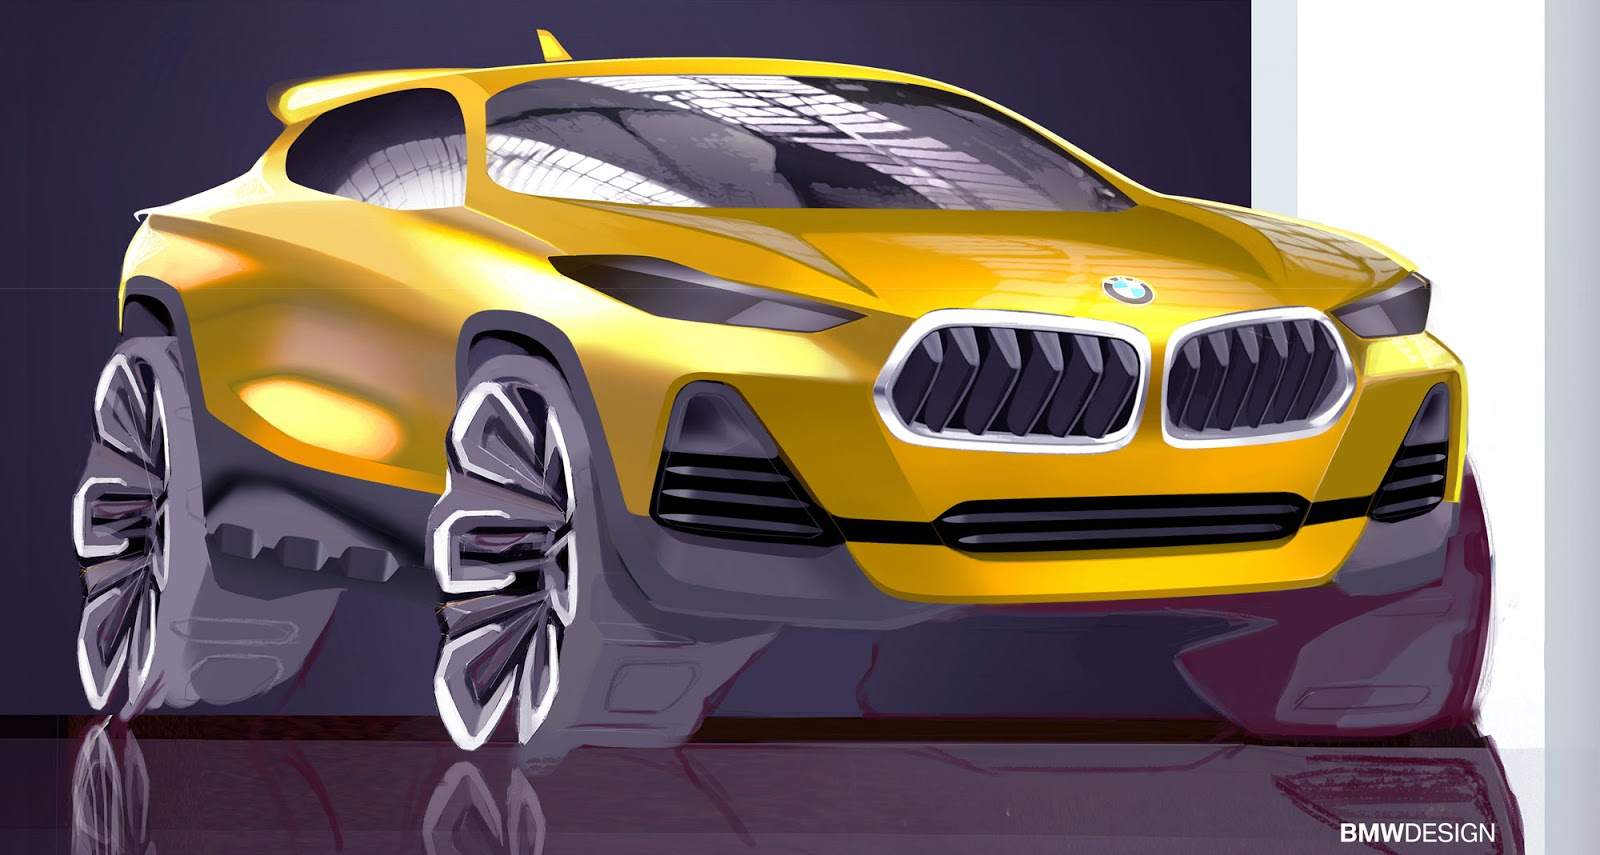 BMW X2 sketch by Sebastian Simm - front view in yellow